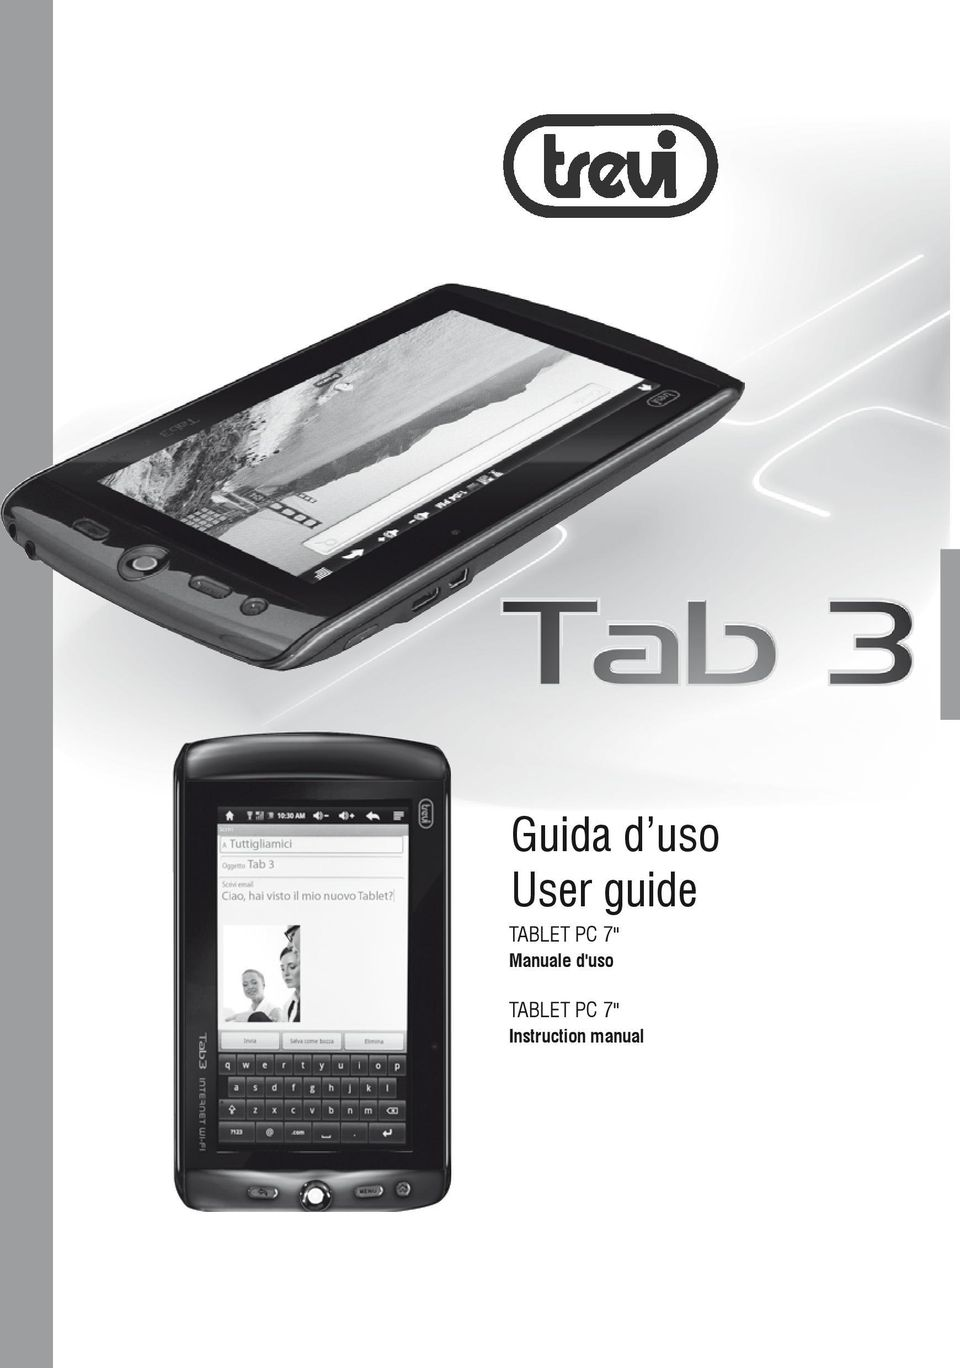 Manuale d'uso TABLET